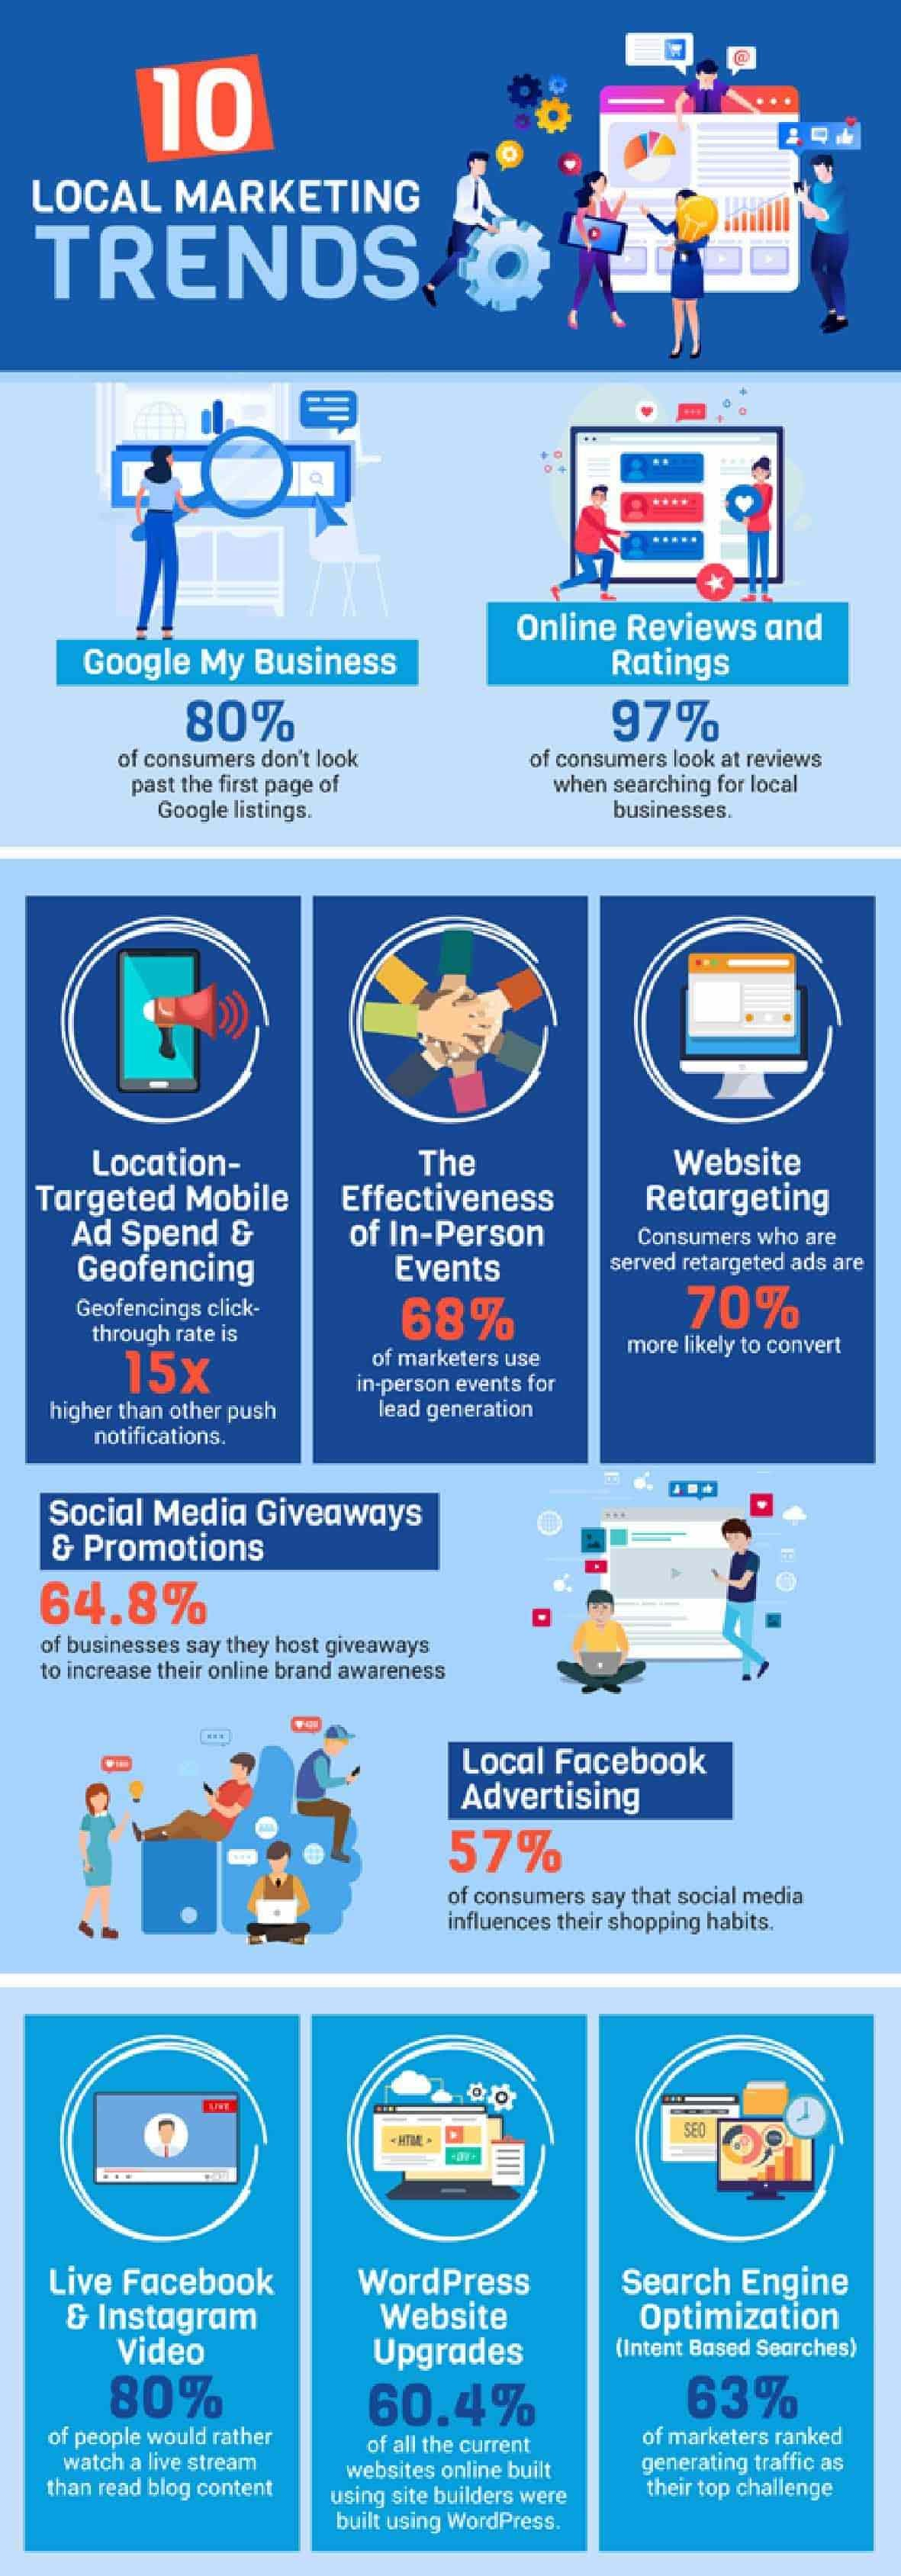 10 Local Marketing Trends #infographic